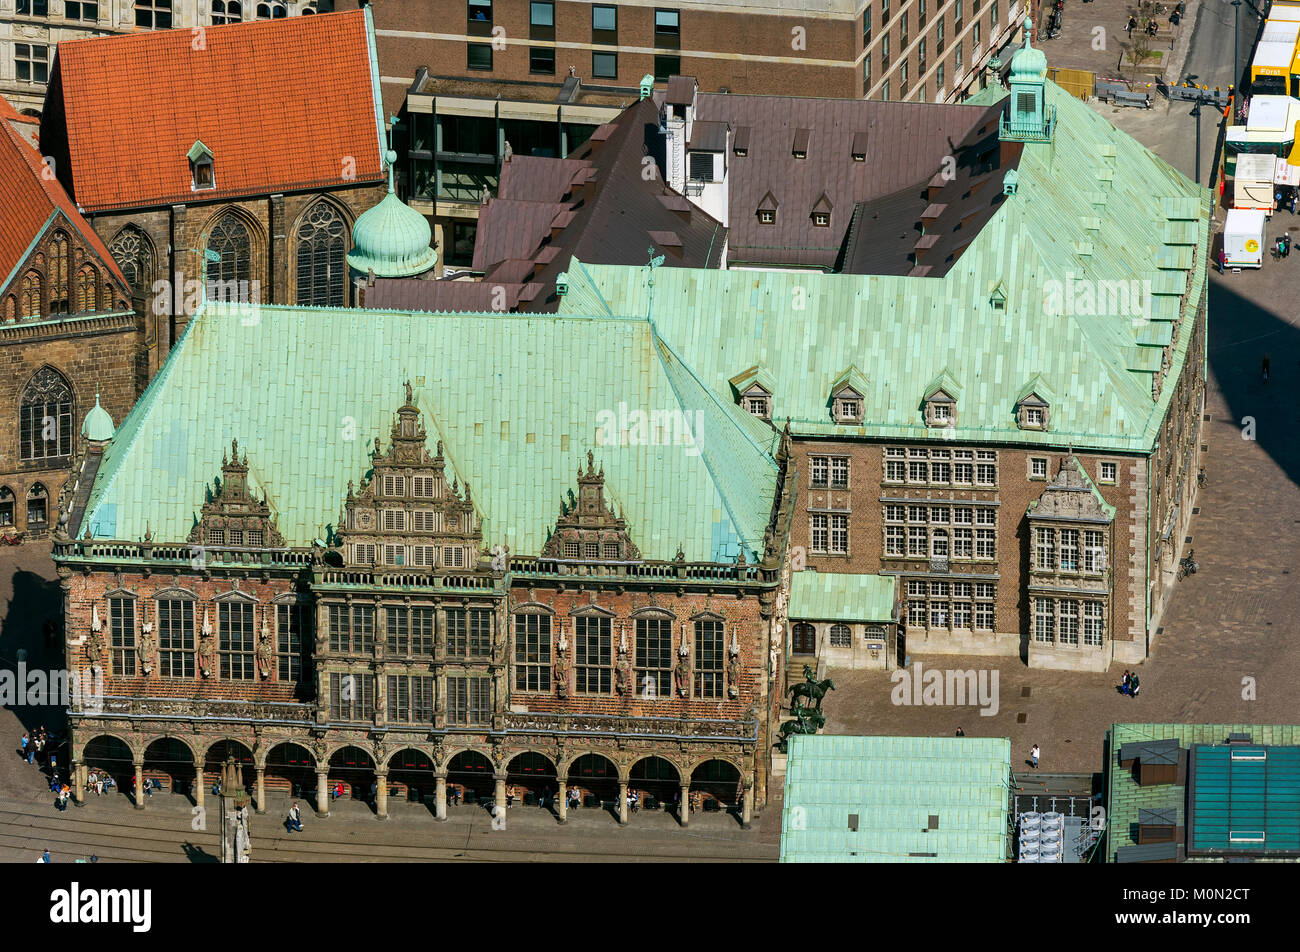 Bremen City Hall, citizenship, green copper roof, downtown Bremen, City, aerial view, aerial photographs of Bremen, - Stock Image